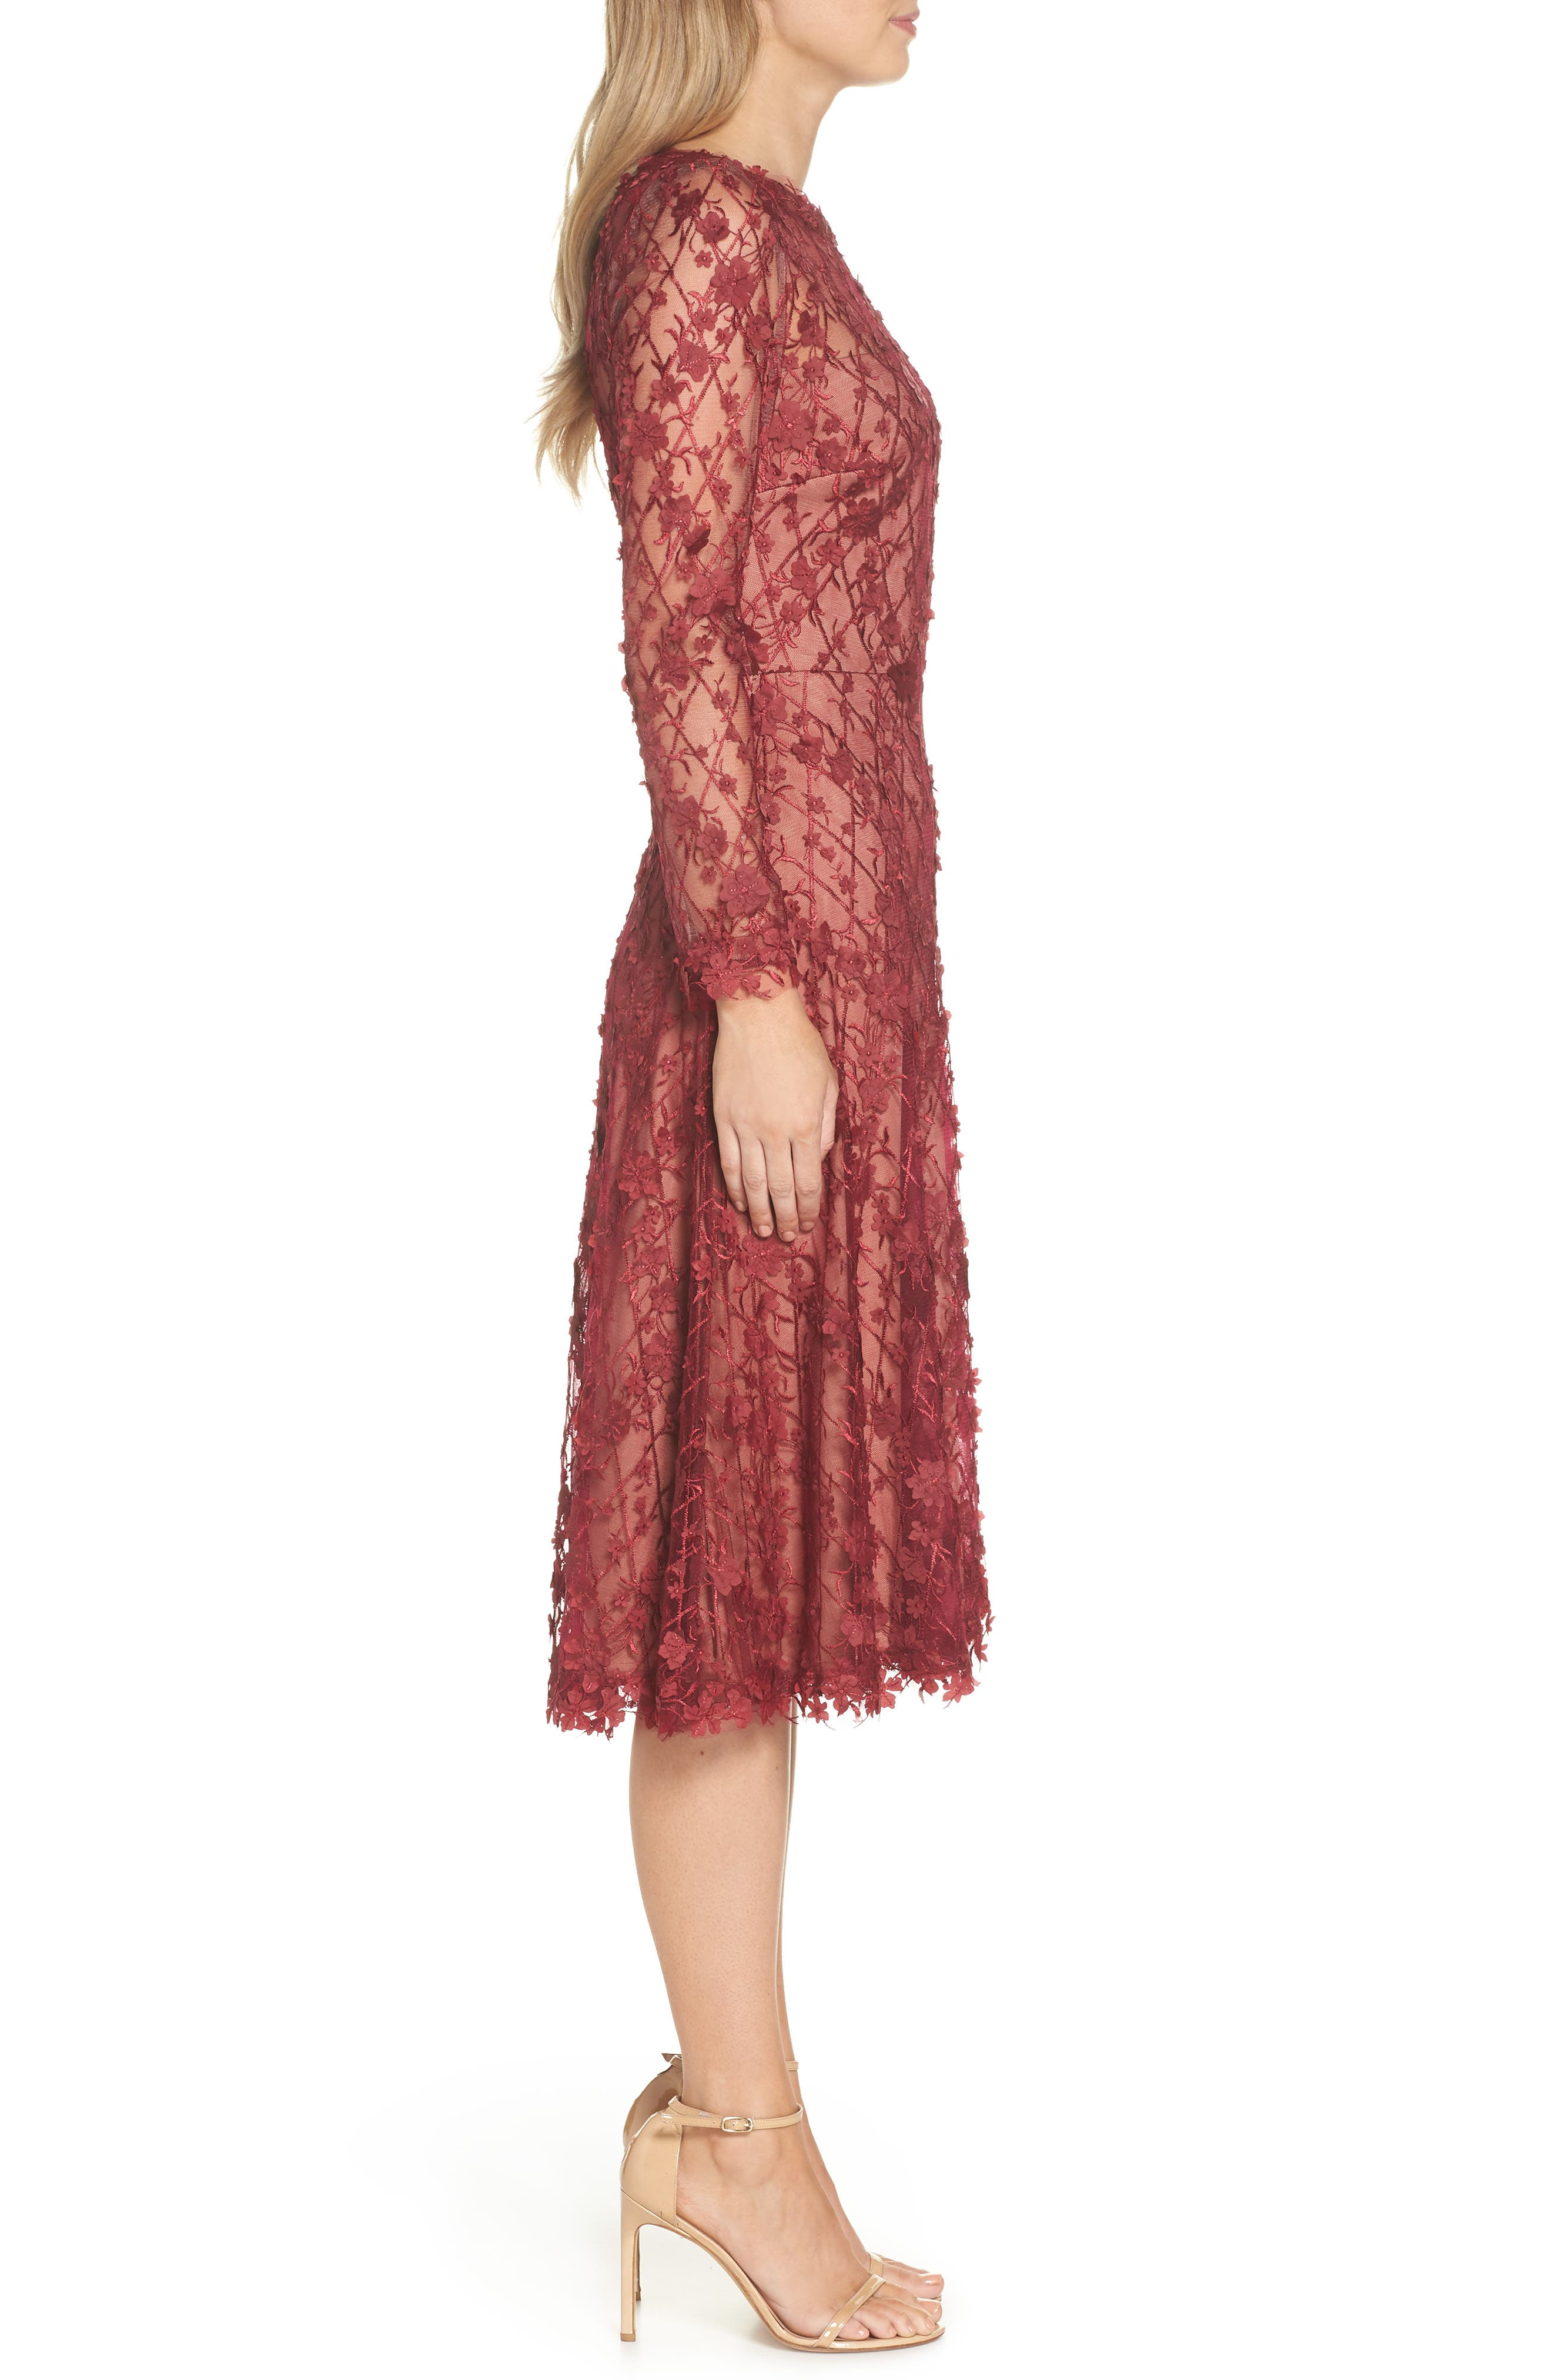 3D Flowers Lace Dress,                             Alternate thumbnail 3, color,                             Rosewood/ Nude